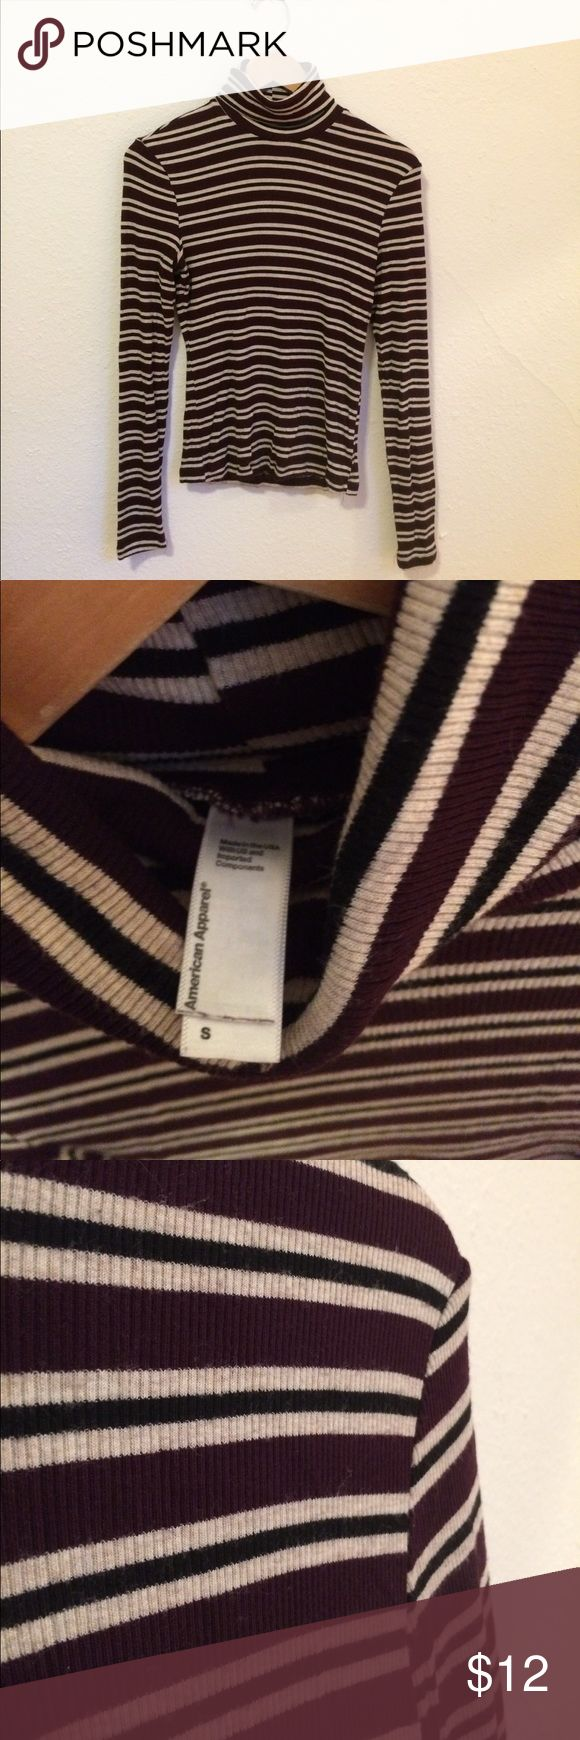 American Apparel Rib Turtleneck American Apparel ribbed turtleneck long sleeve shirt with a striped pattern. It is black, cream and the color eggplant which is a dark purple red color. Great with a cute skirt and boots! American Apparel Tops